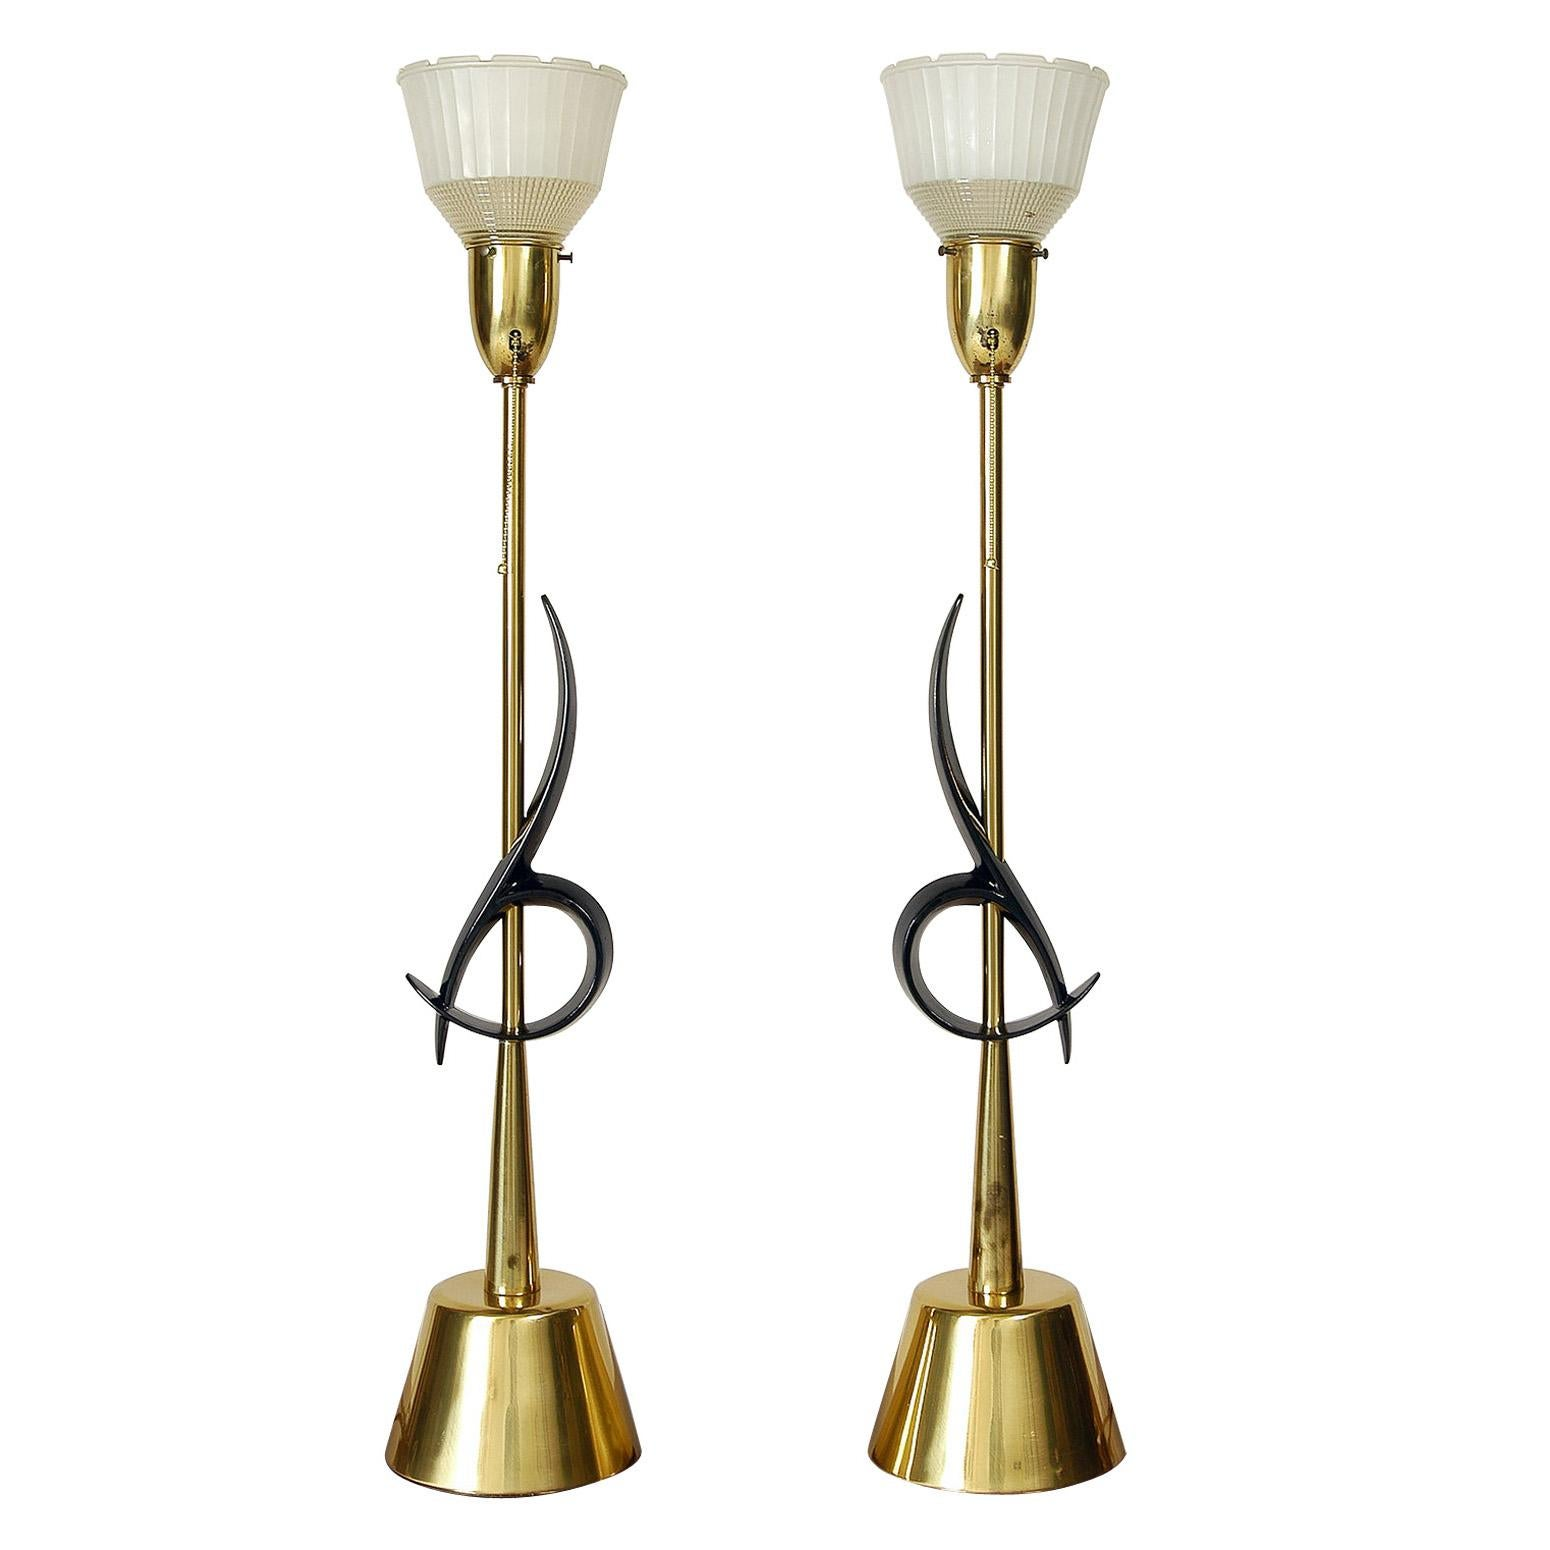 1950s American Mid-Century Modern Table Lamps Rembrandt Hollywood Regency, Pair